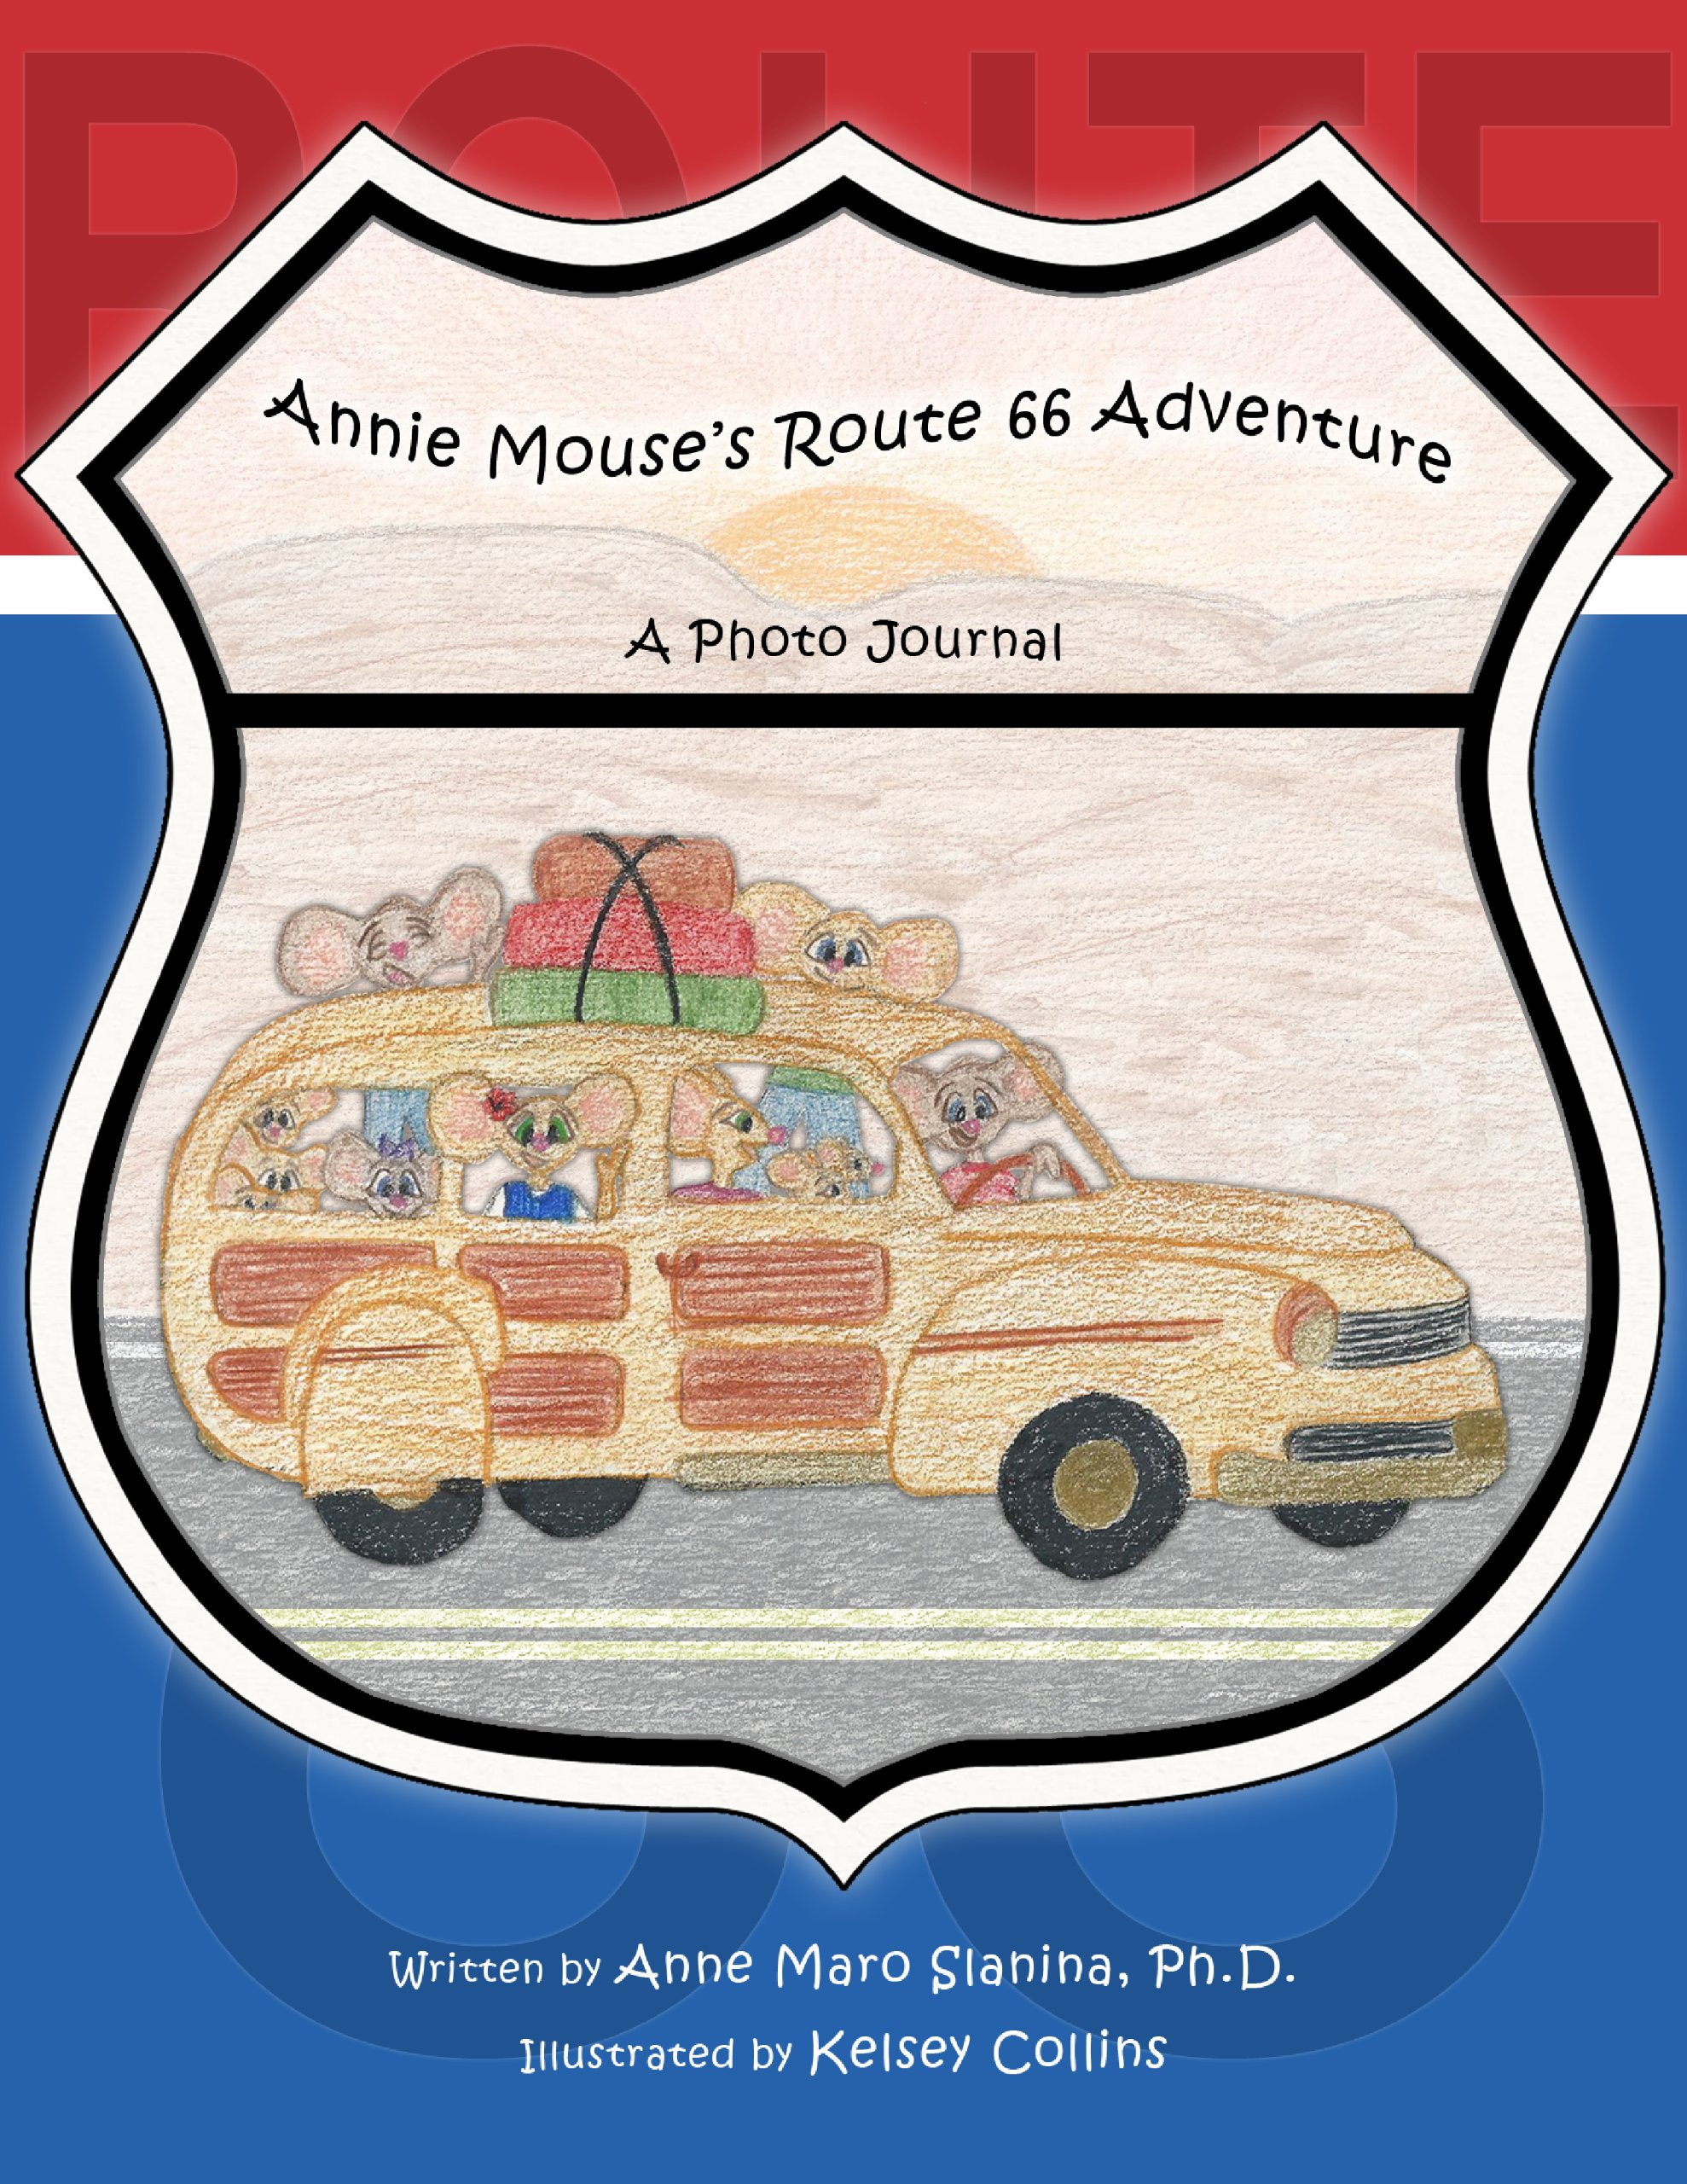 Annie mouses route 66 adventure a photo journal anne maro slanina annie mouses route 66 adventure a photo journal anne maro slanina kelsey collins 9780979337963 amazon books solutioingenieria Gallery